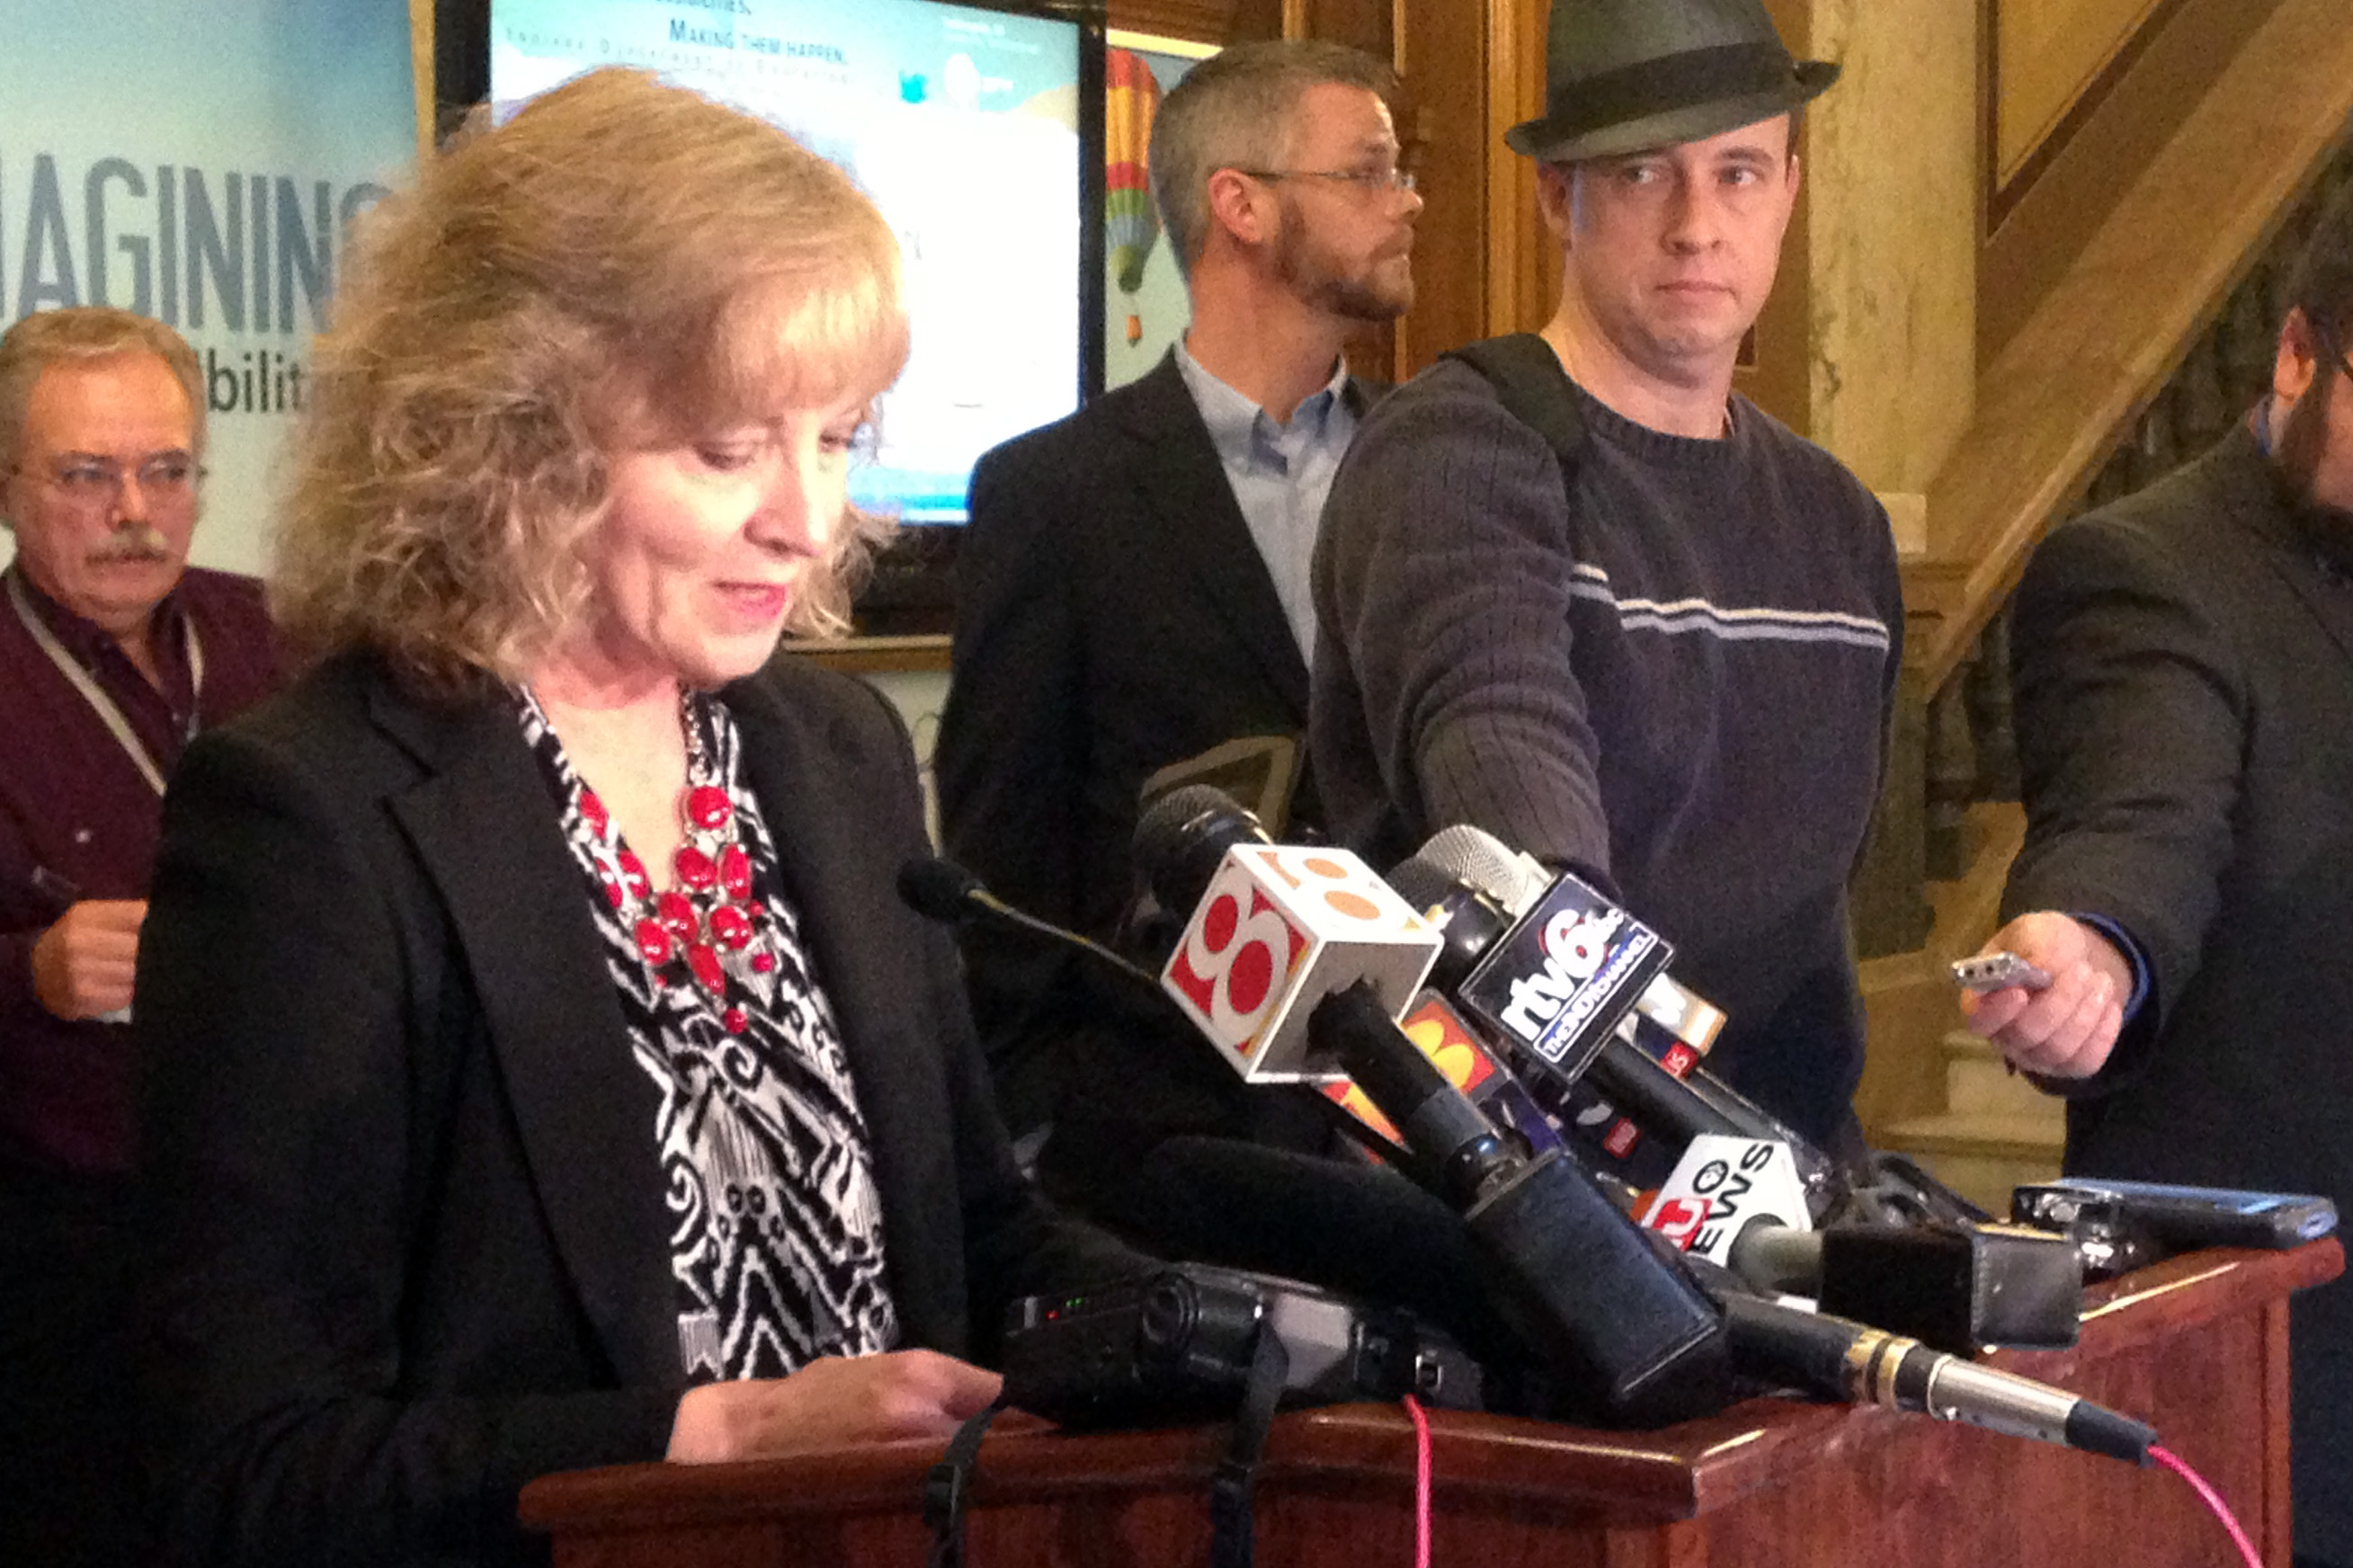 State Superintendent Glenda Ritz answers reporters' questions after filing suit against the 10 appointed members of the State Board of Education, alleging violations of Indiana's Open Door Law. Board members are asking that the suit be dismissed.